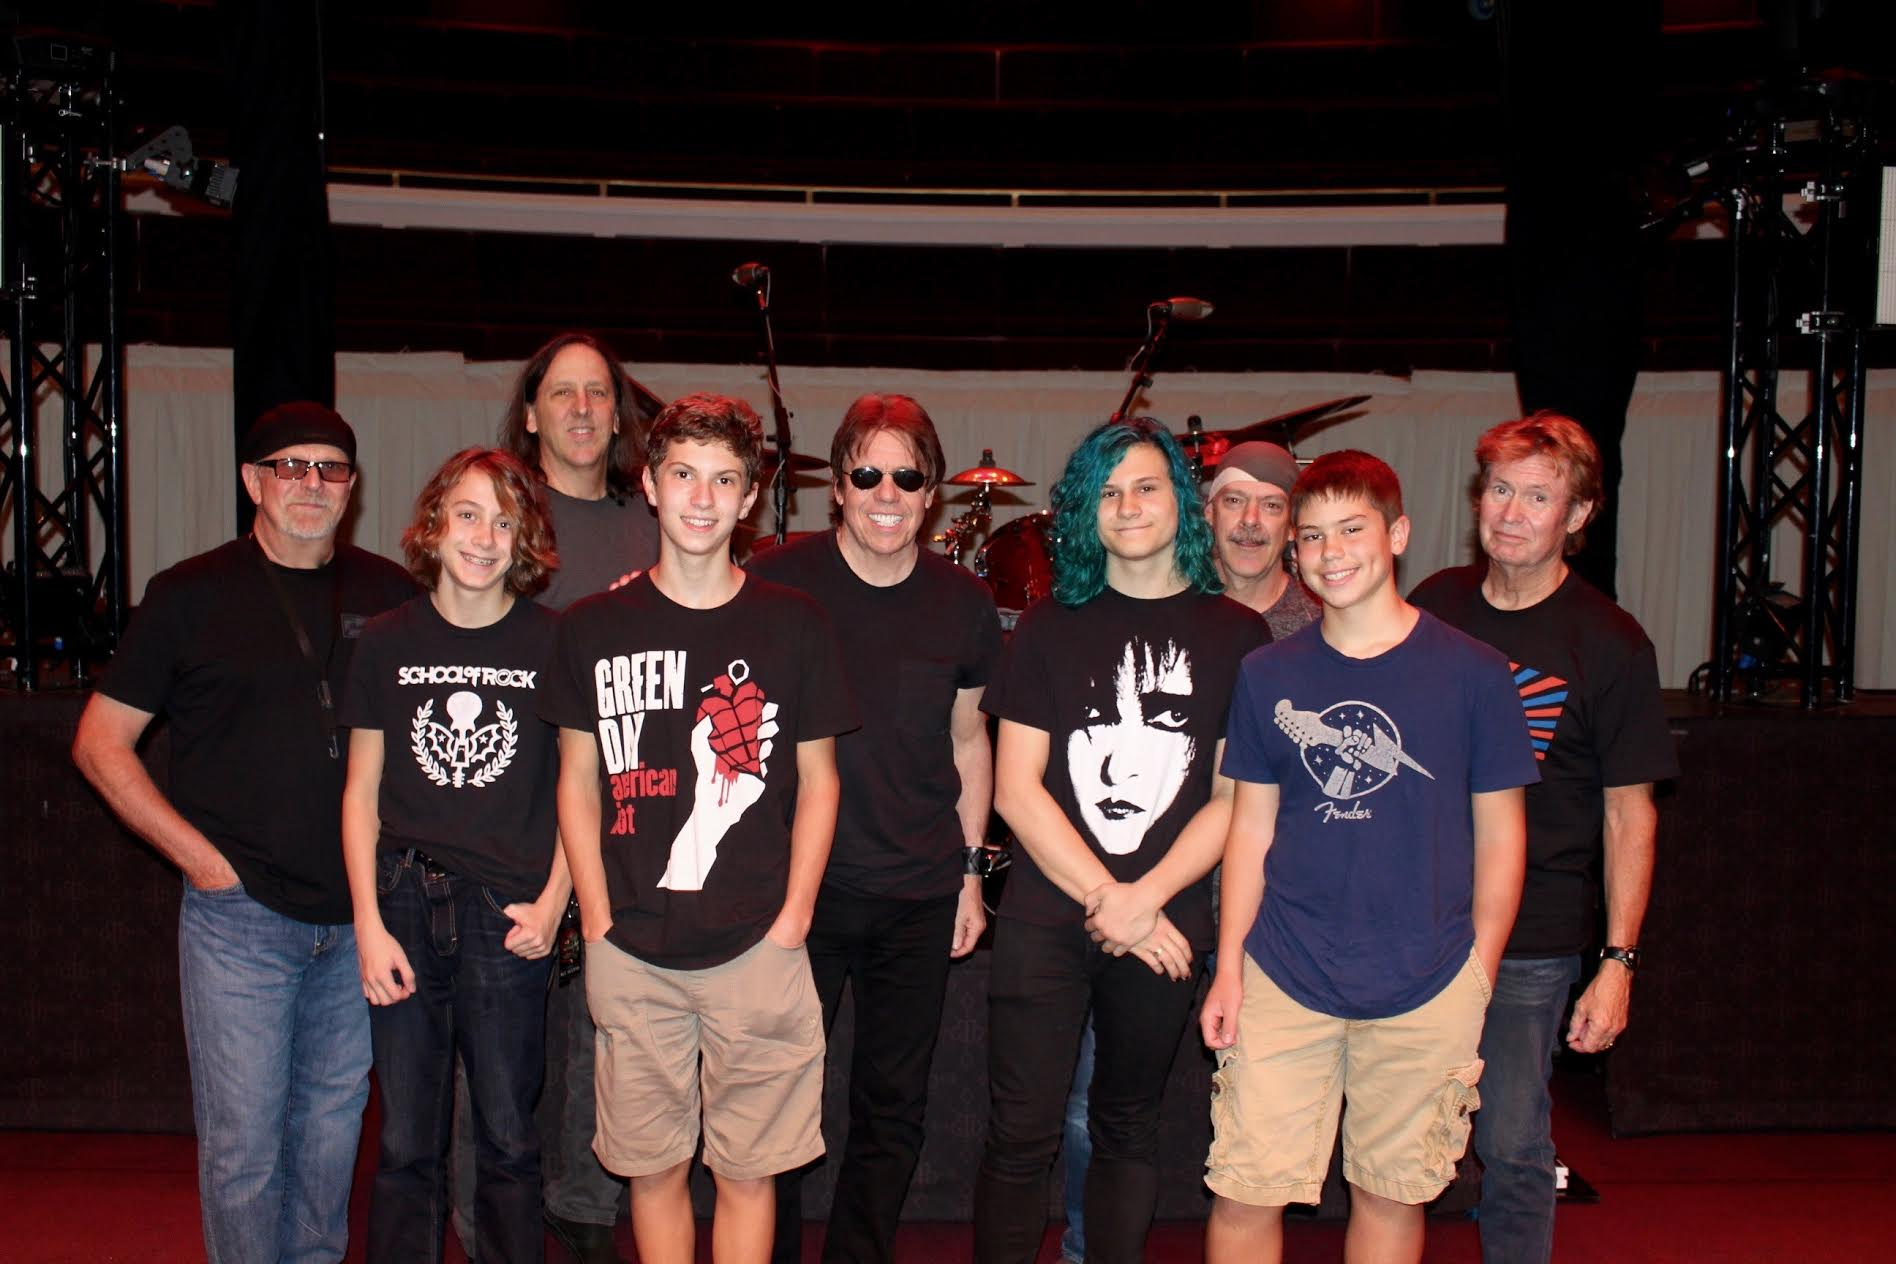 George Thorogood and the Destroyers and members of the School of Rock in Carmel IN